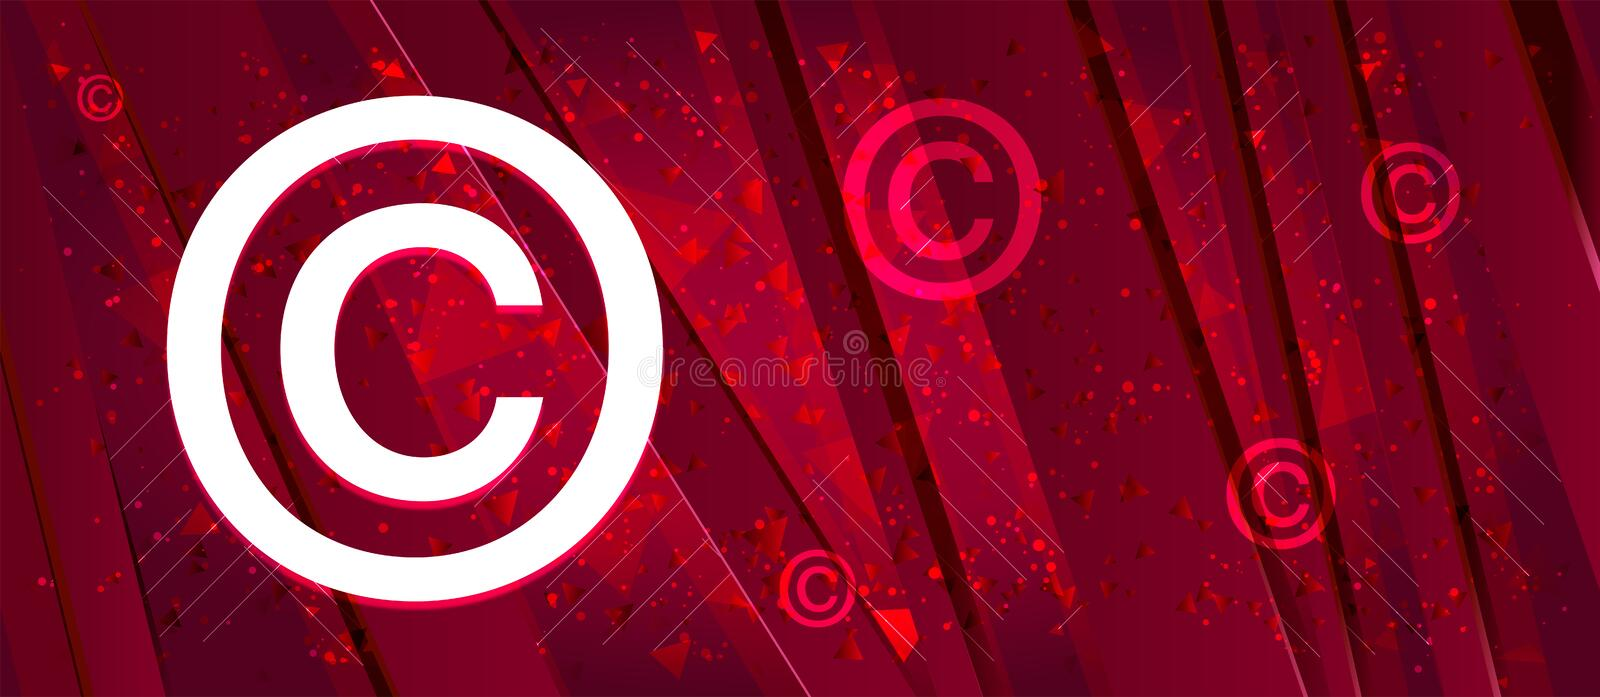 Copyright symbol icon Abstract design bright red banner background royalty free illustration